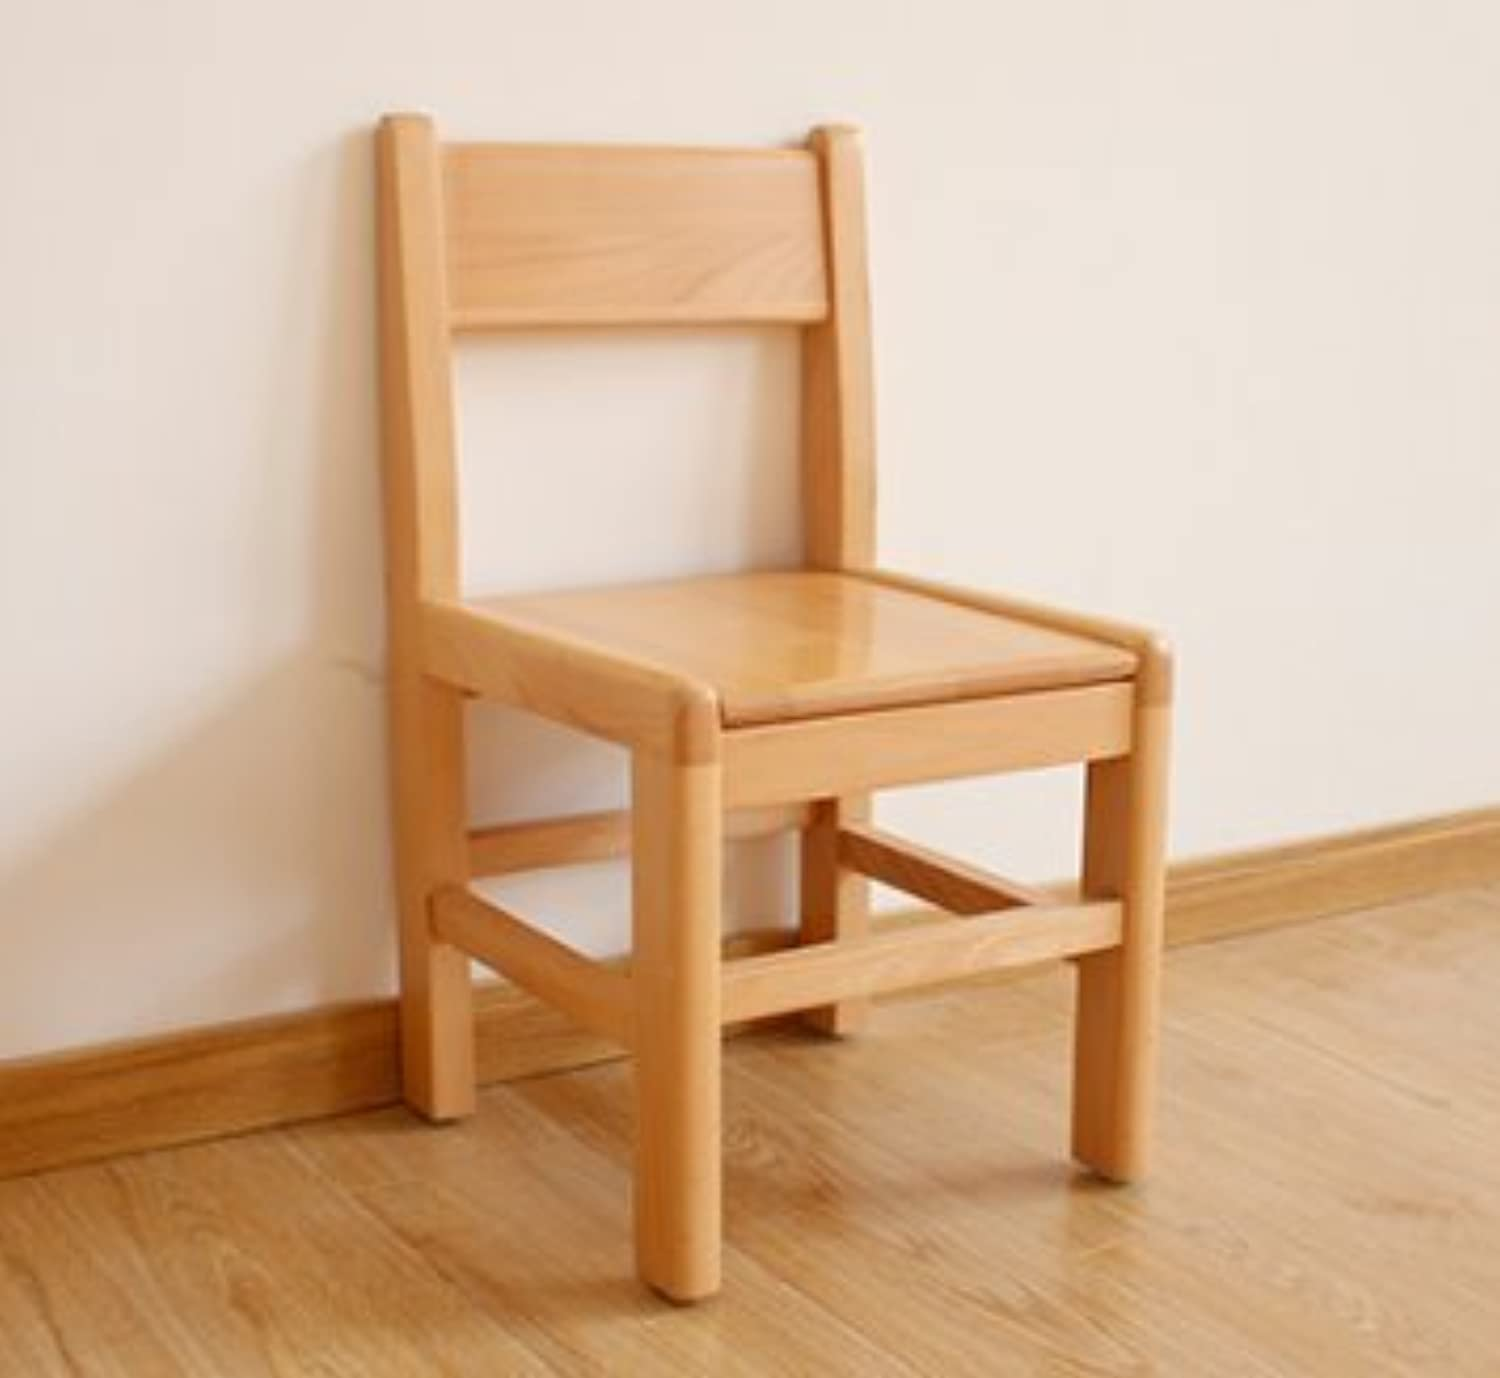 Low Stool Dressing Stool Solid Wood Modern Furniture Simple Change shoes Stool Home Oak Bench (Size   L)